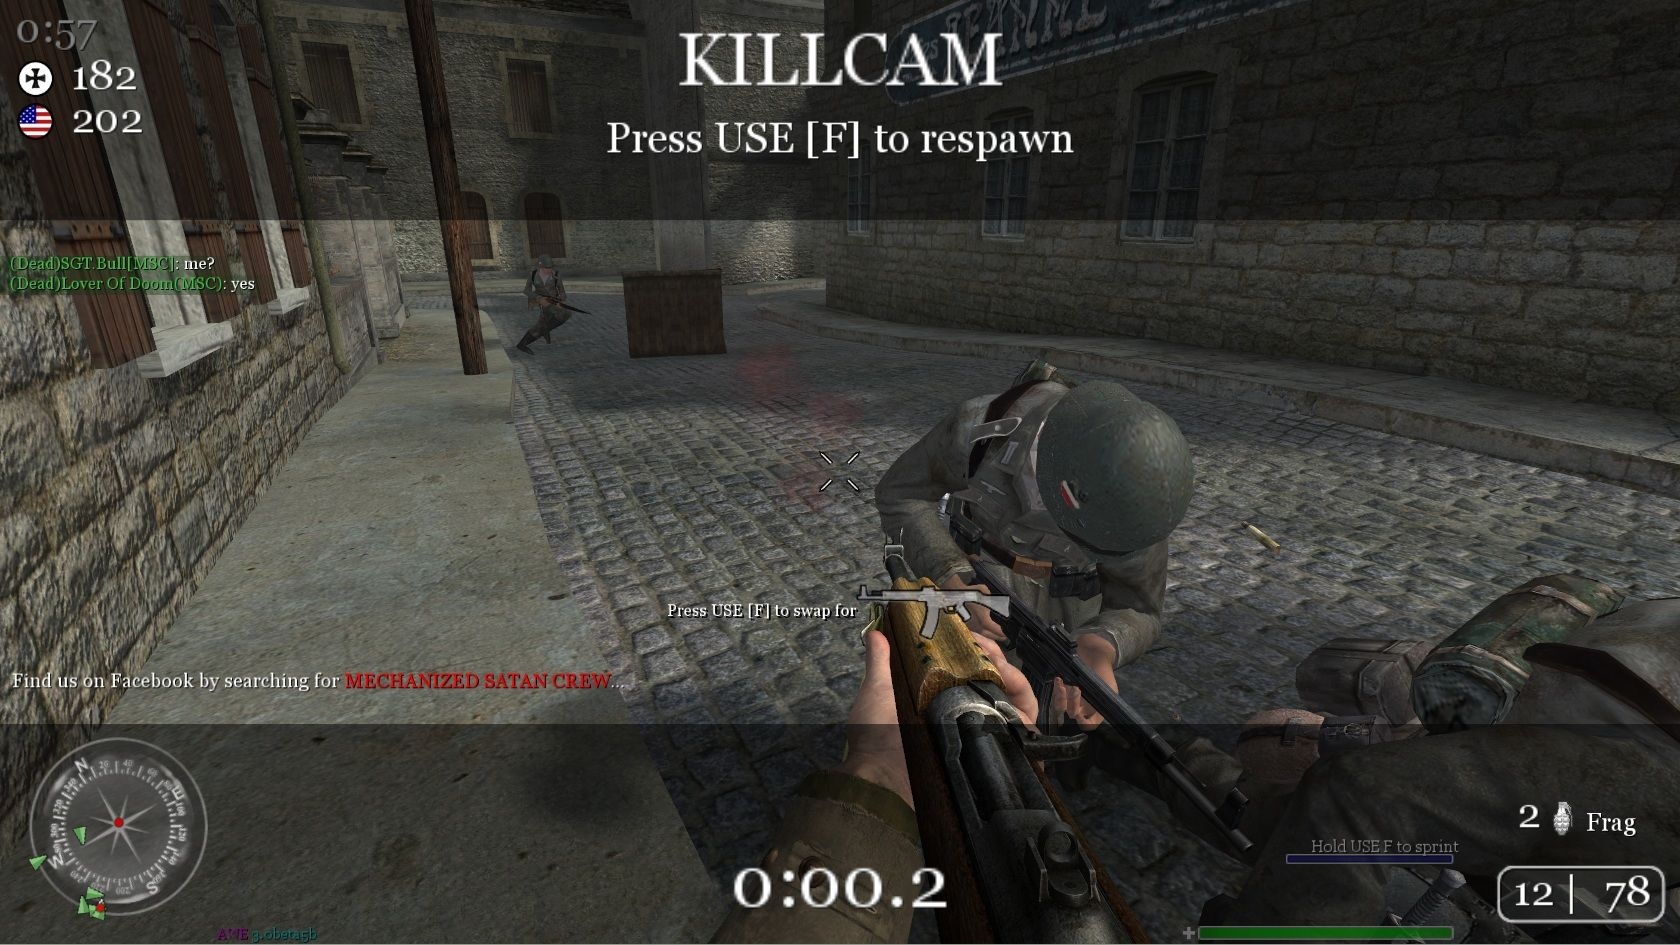 509509-call-of-duty-2-windows-screenshot-my-death-caught-on-call